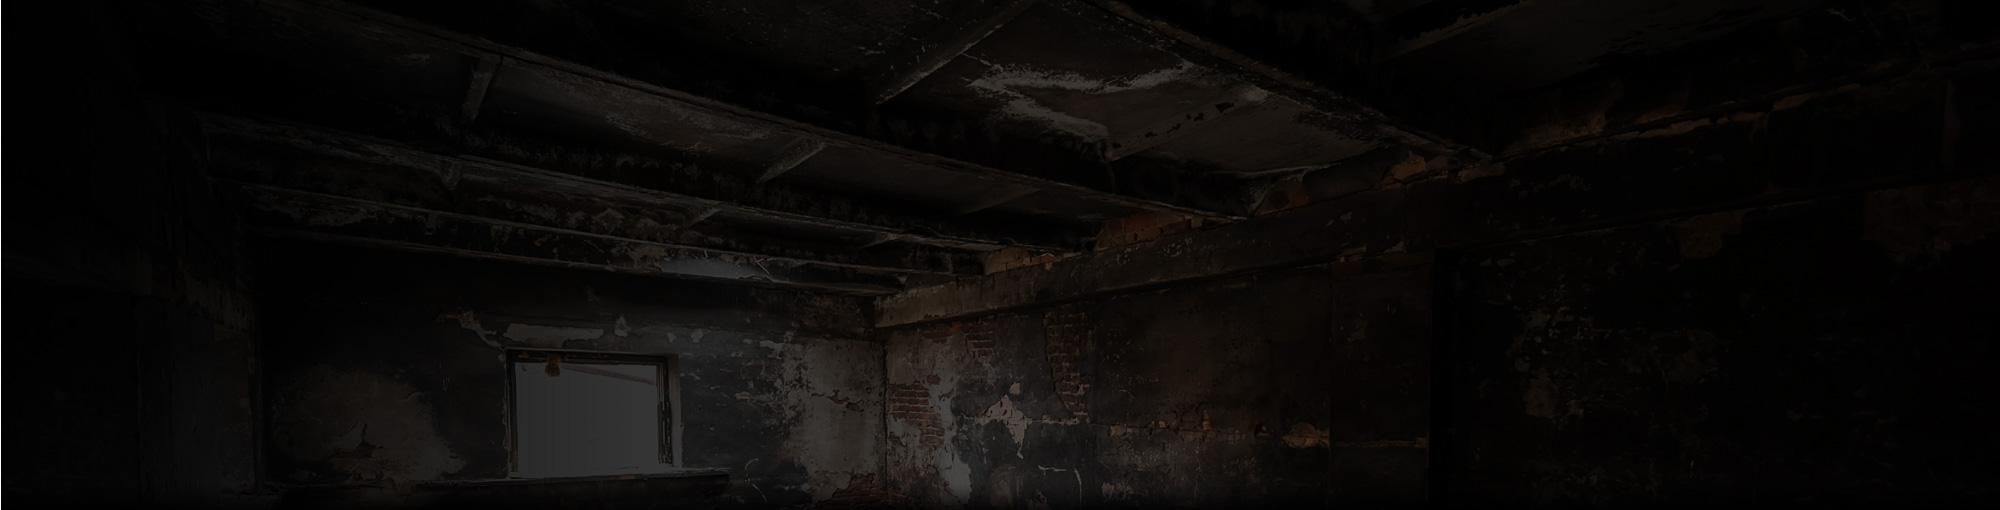 slider-trashed-building-interior